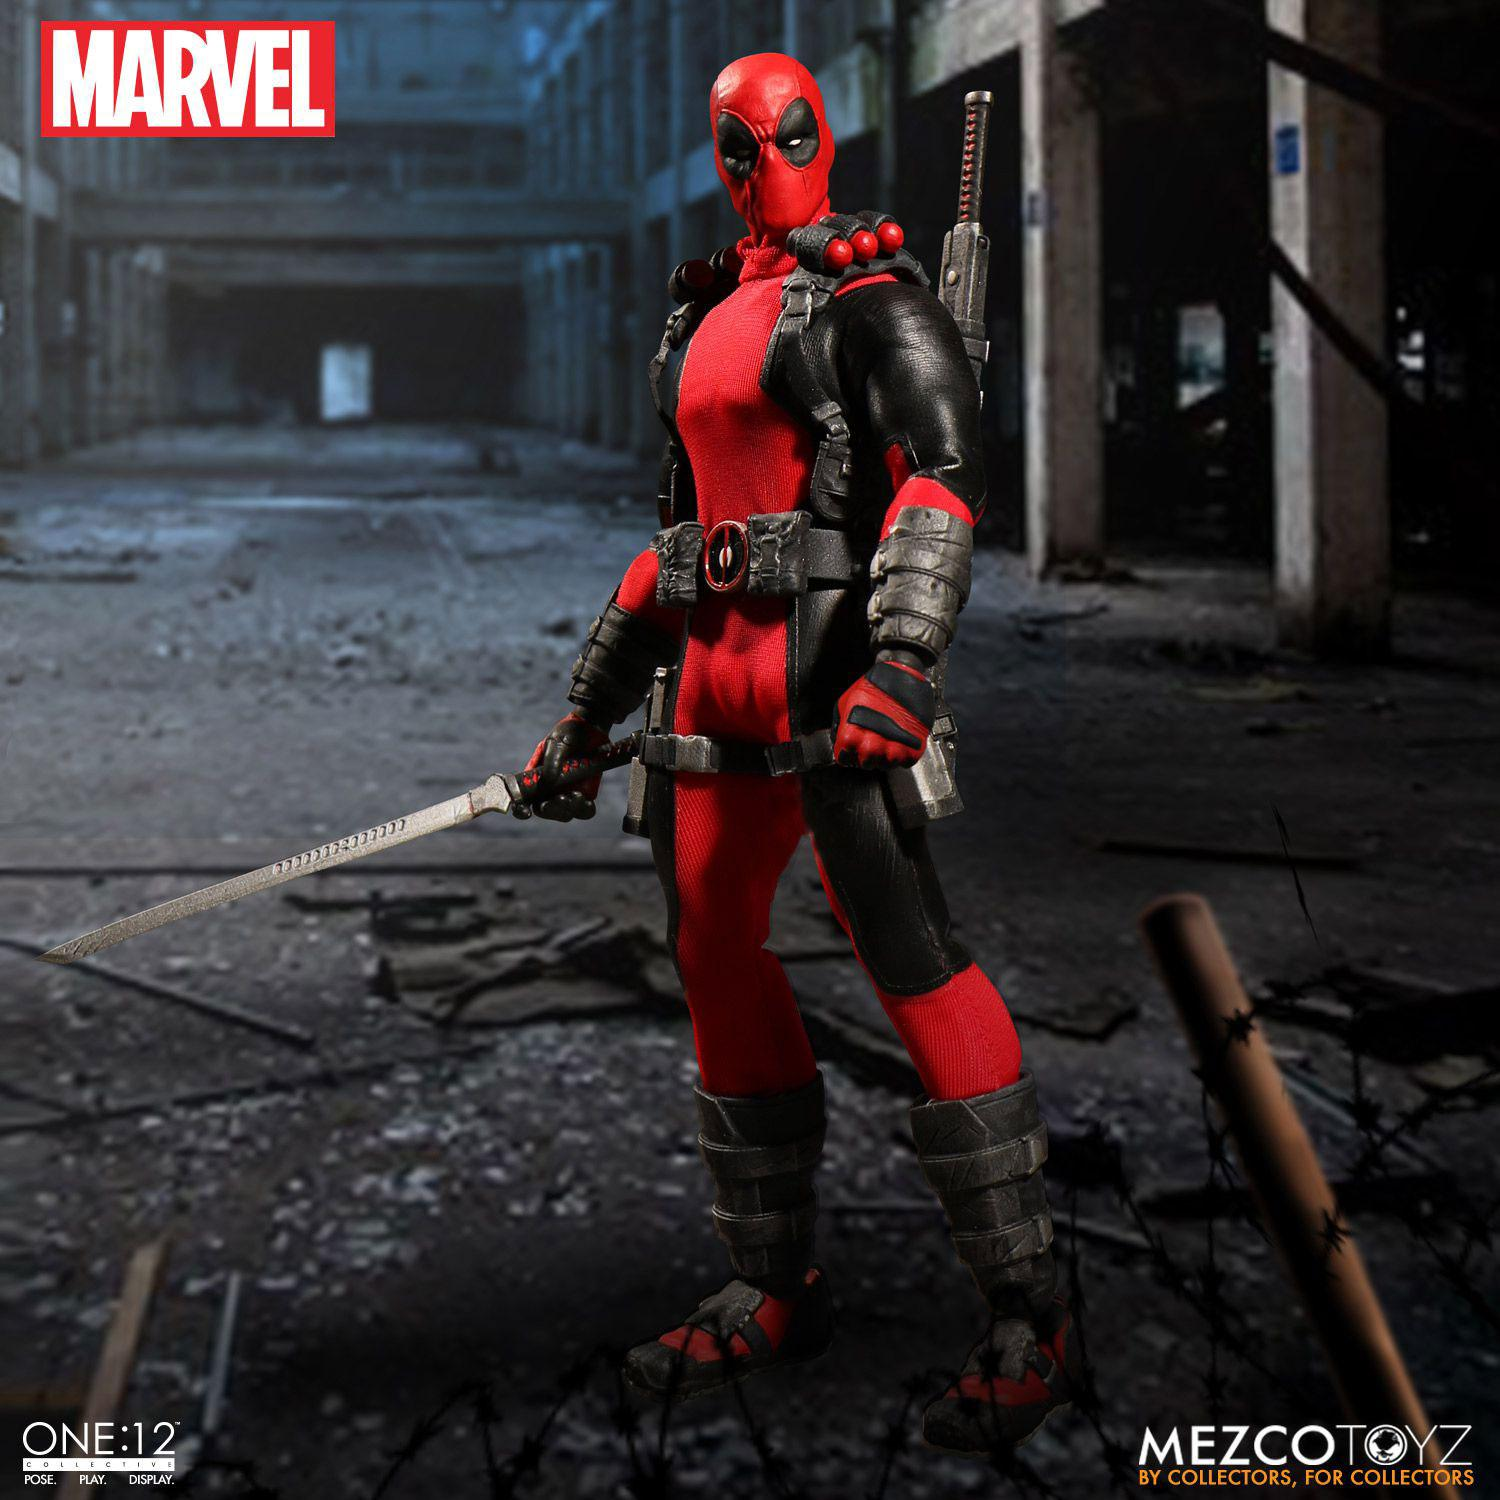 Marvel Universe Action Figure 1/12 Deadpool 17 cm